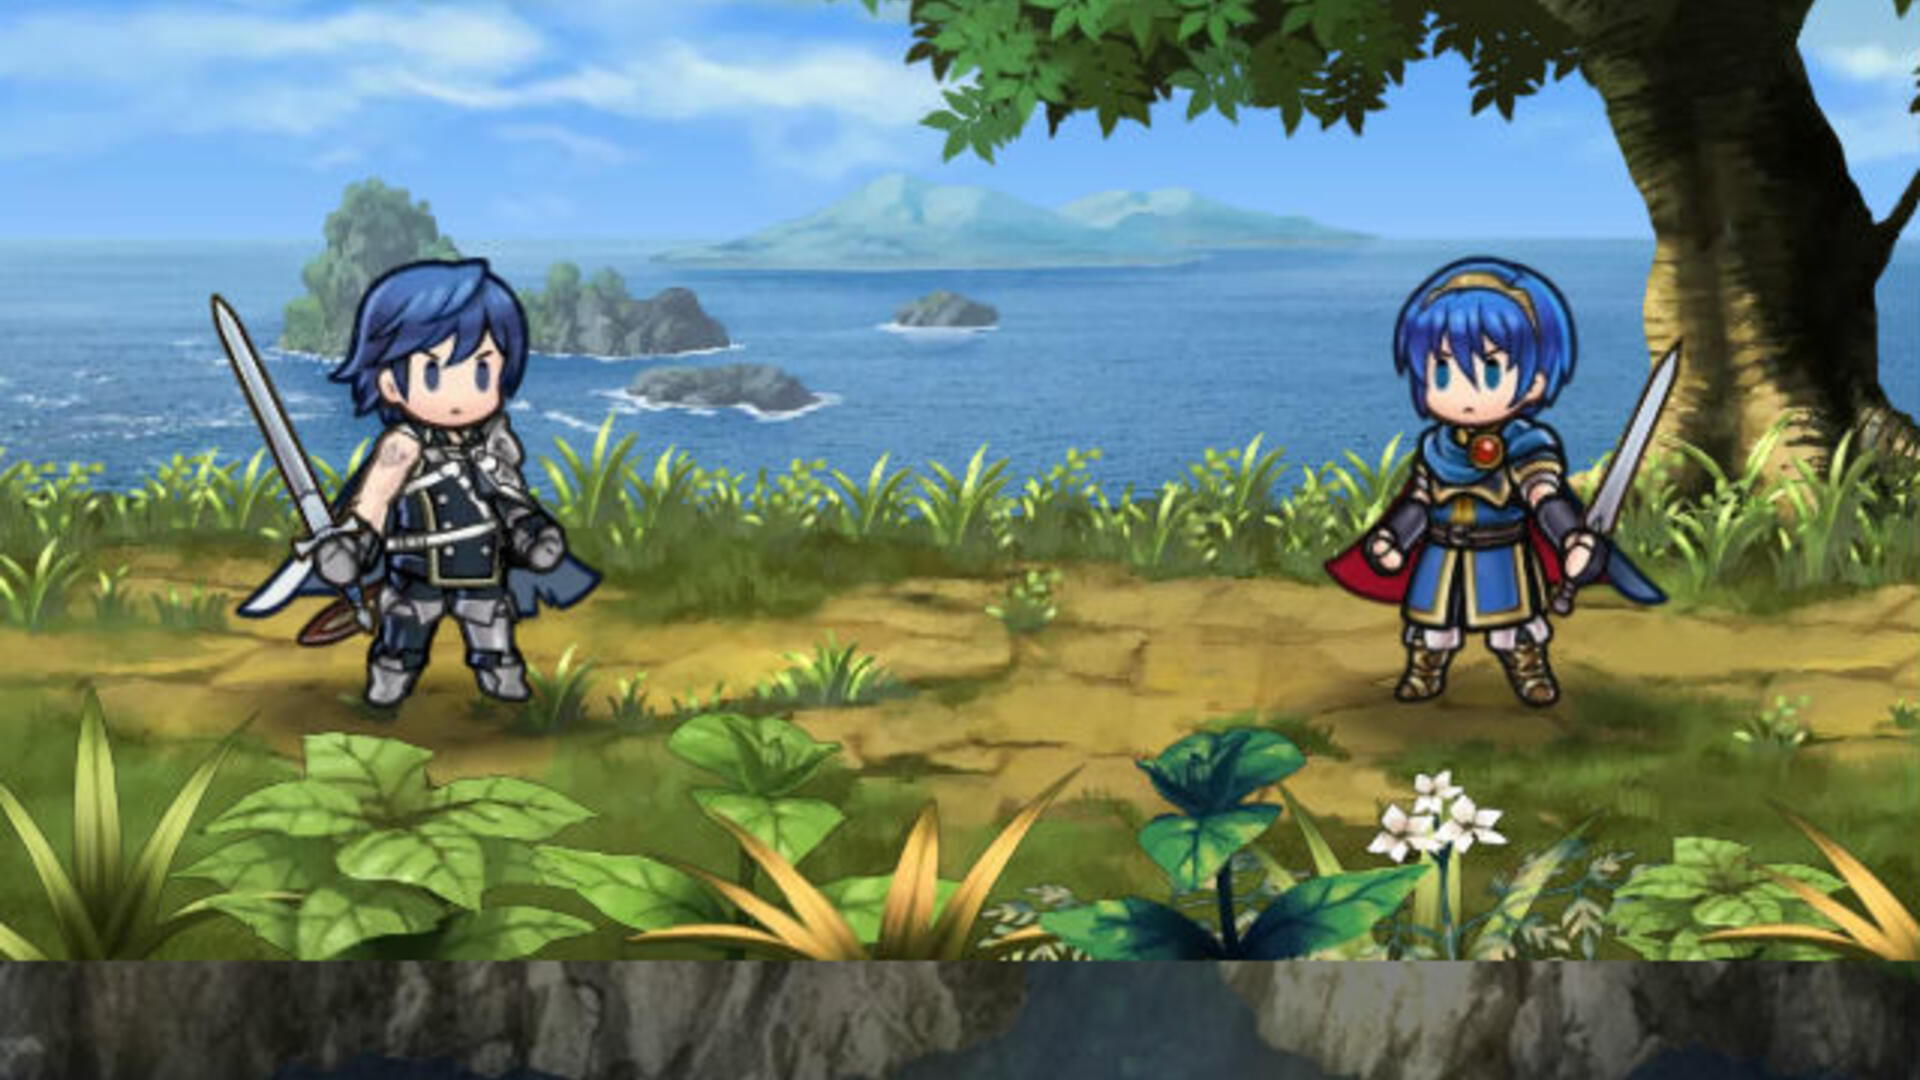 Fire Emblem Heroes: How to Gain XP and Level Up Fast